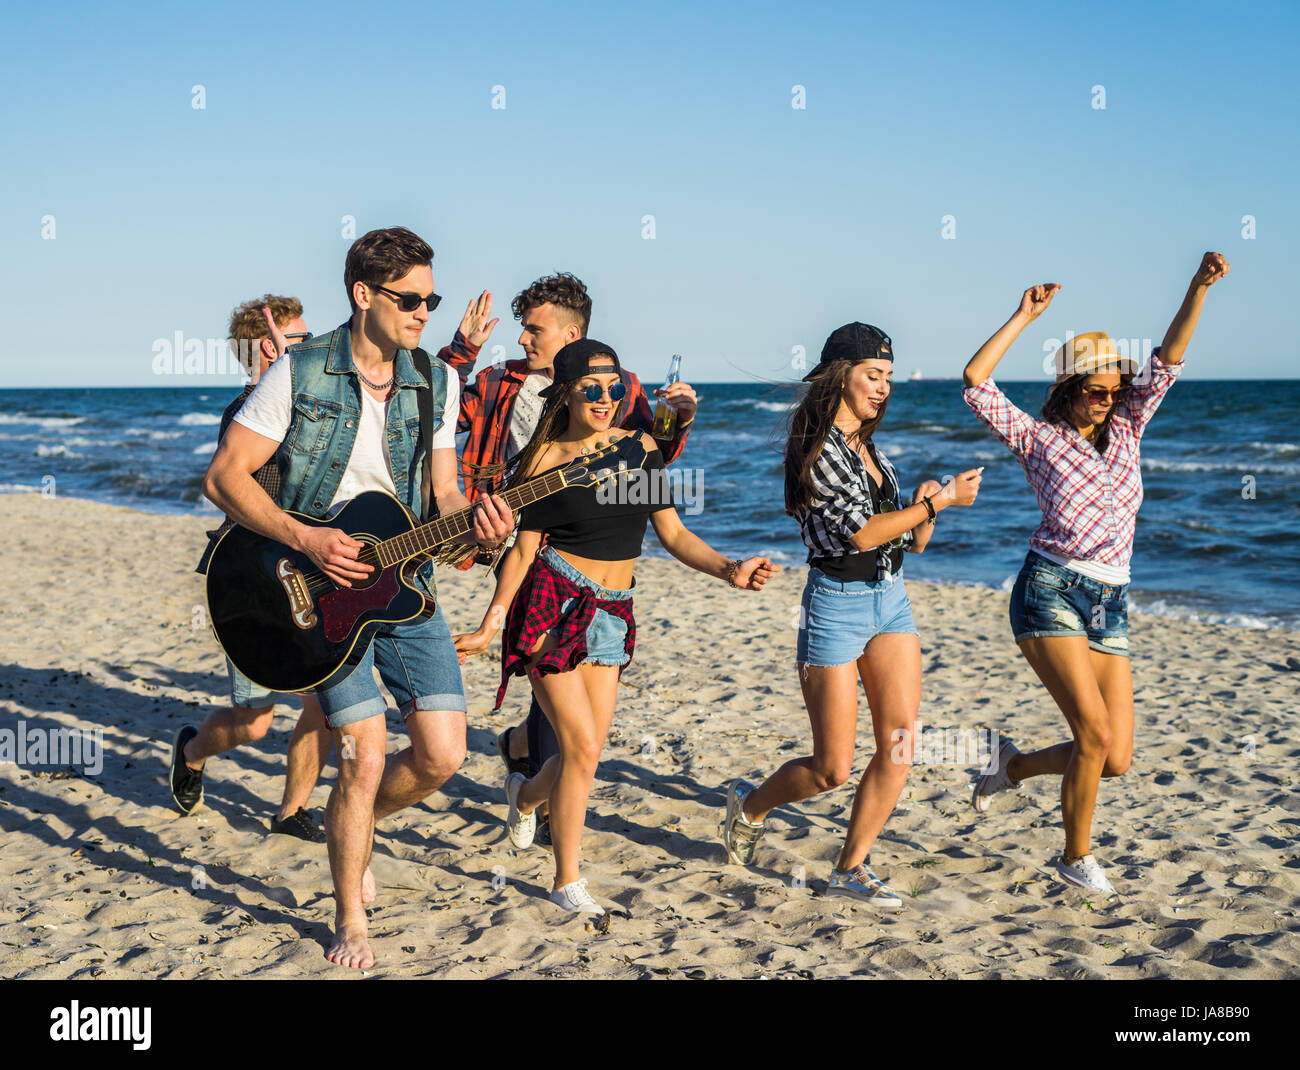 Man playing guitar on the beach and his friends dancing around him - Stock Image